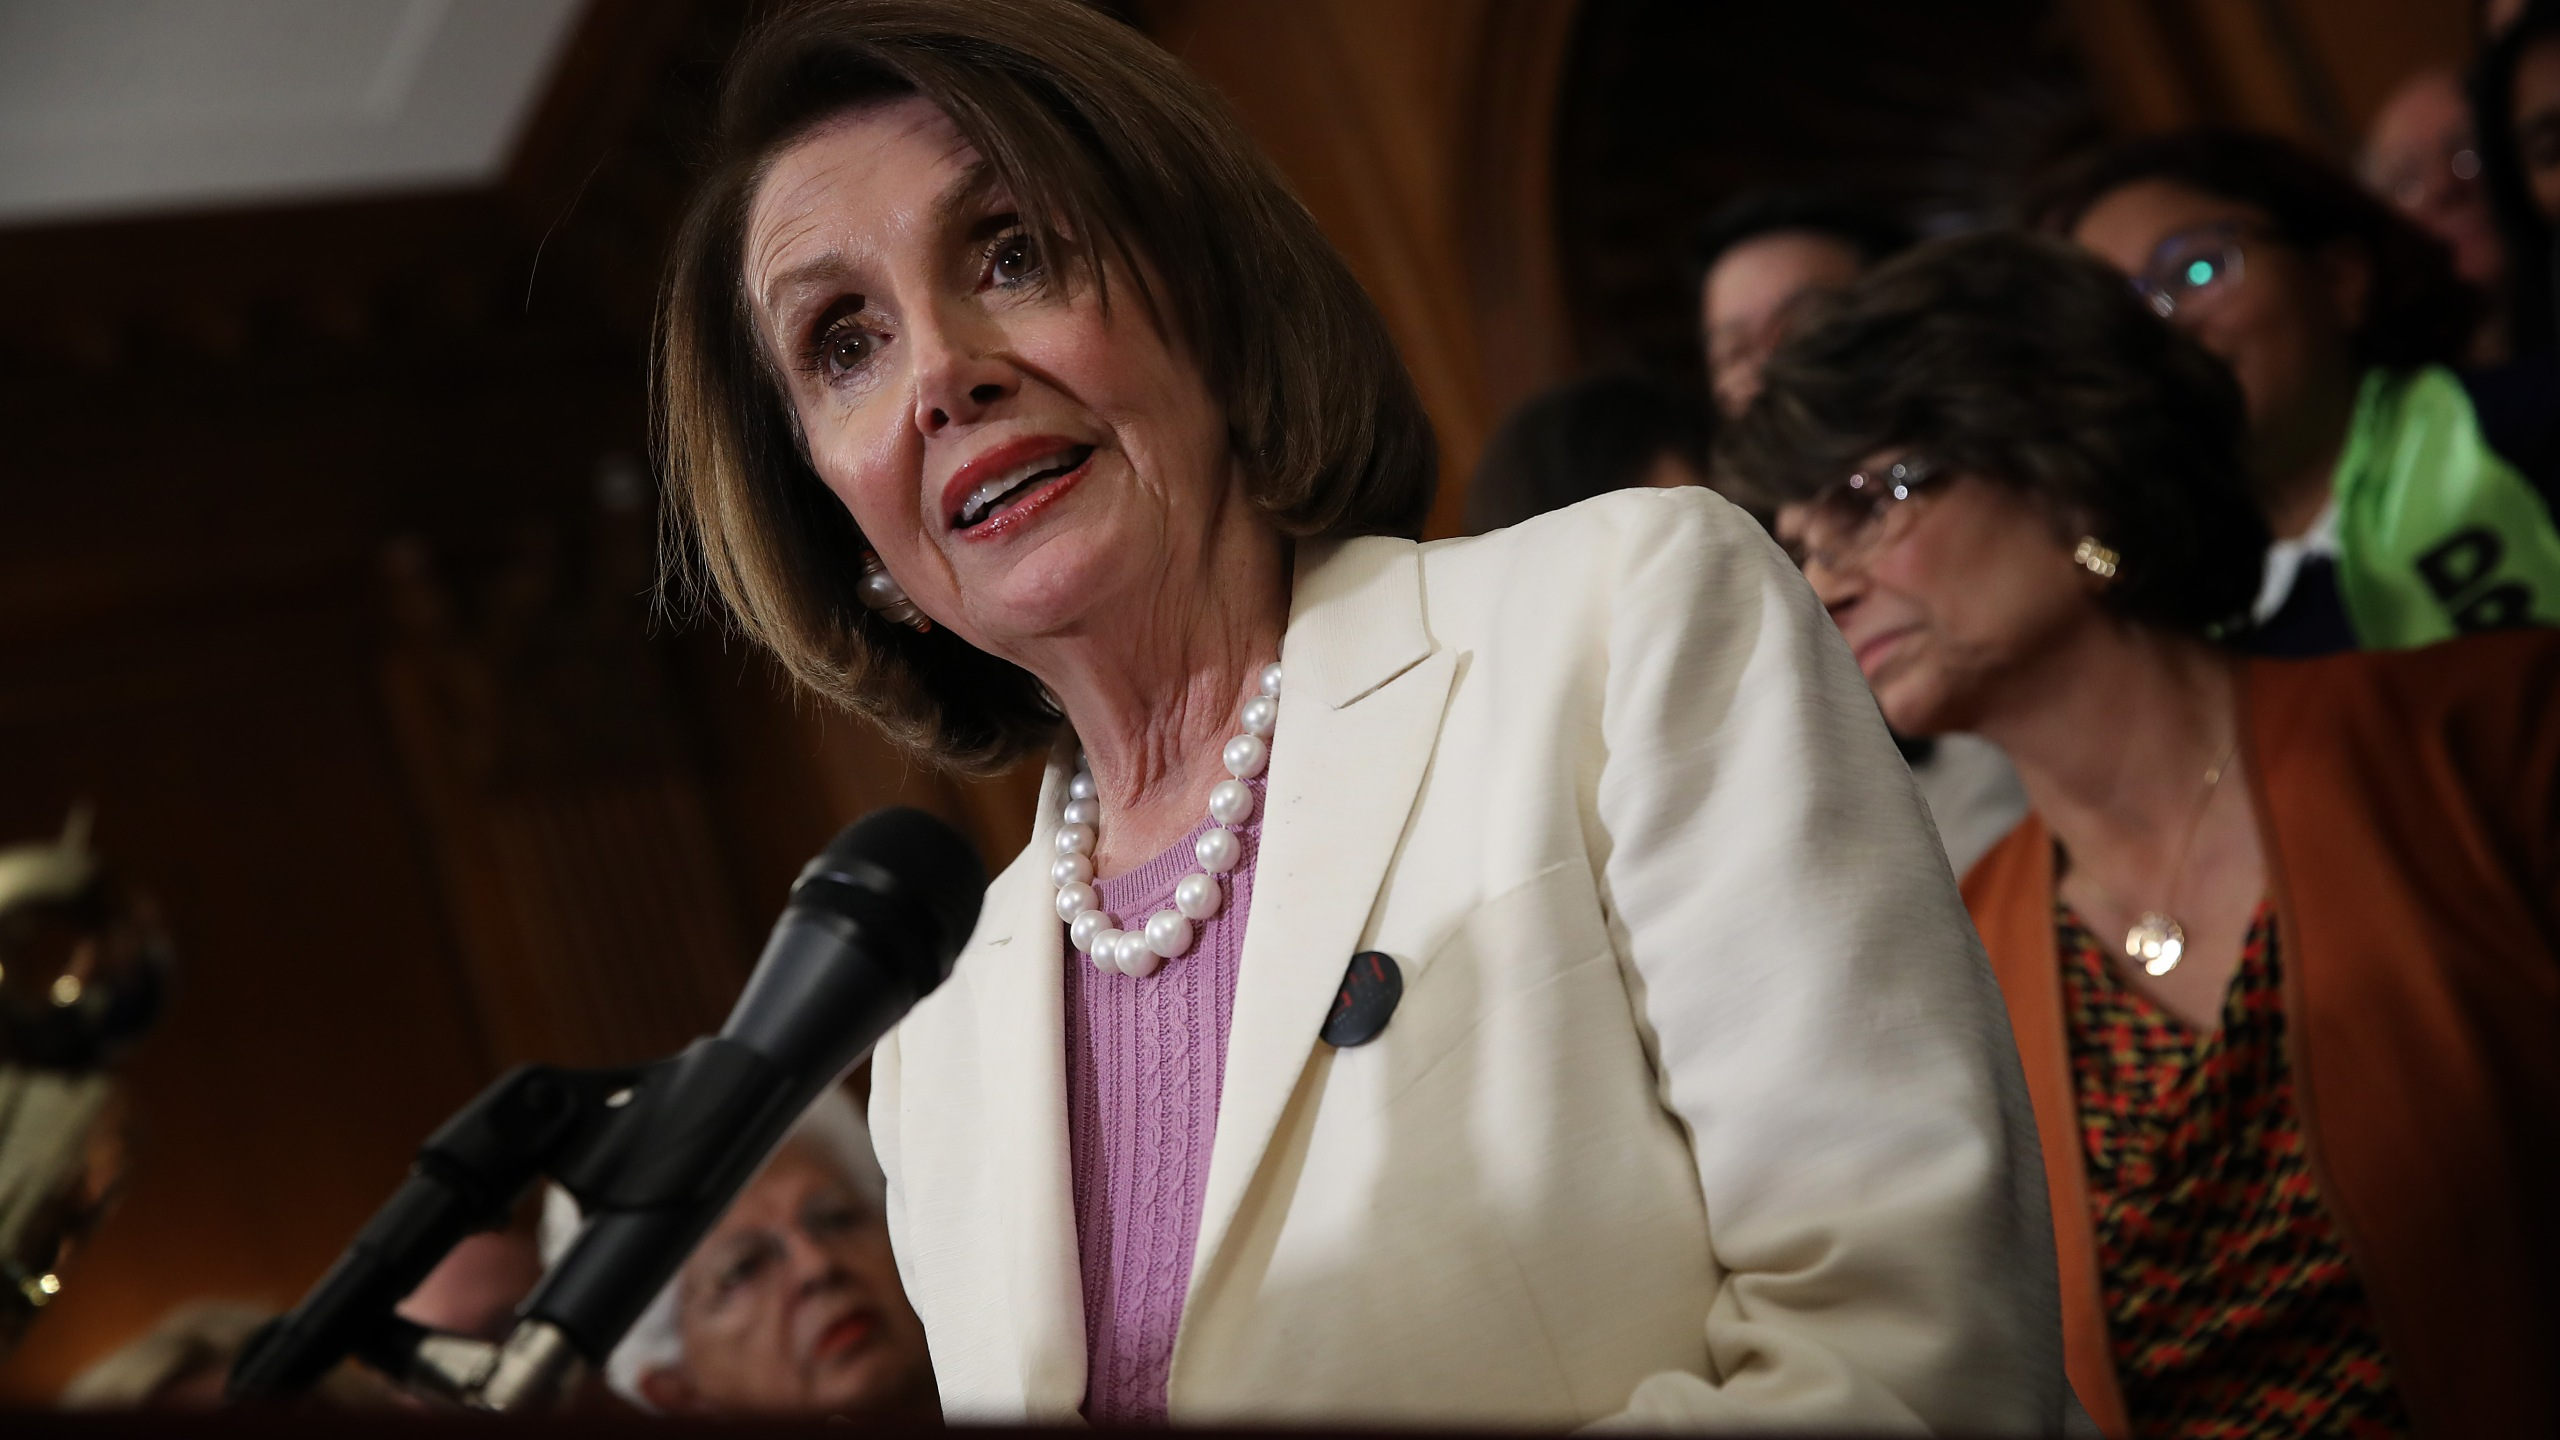 U.S. Speaker of the House Nancy Pelosi speaks during a press conference with House Democrats at the U.S. Capitol June 4, 2019 in Washington, DC. (Credit: Win McNamee/Getty Images)